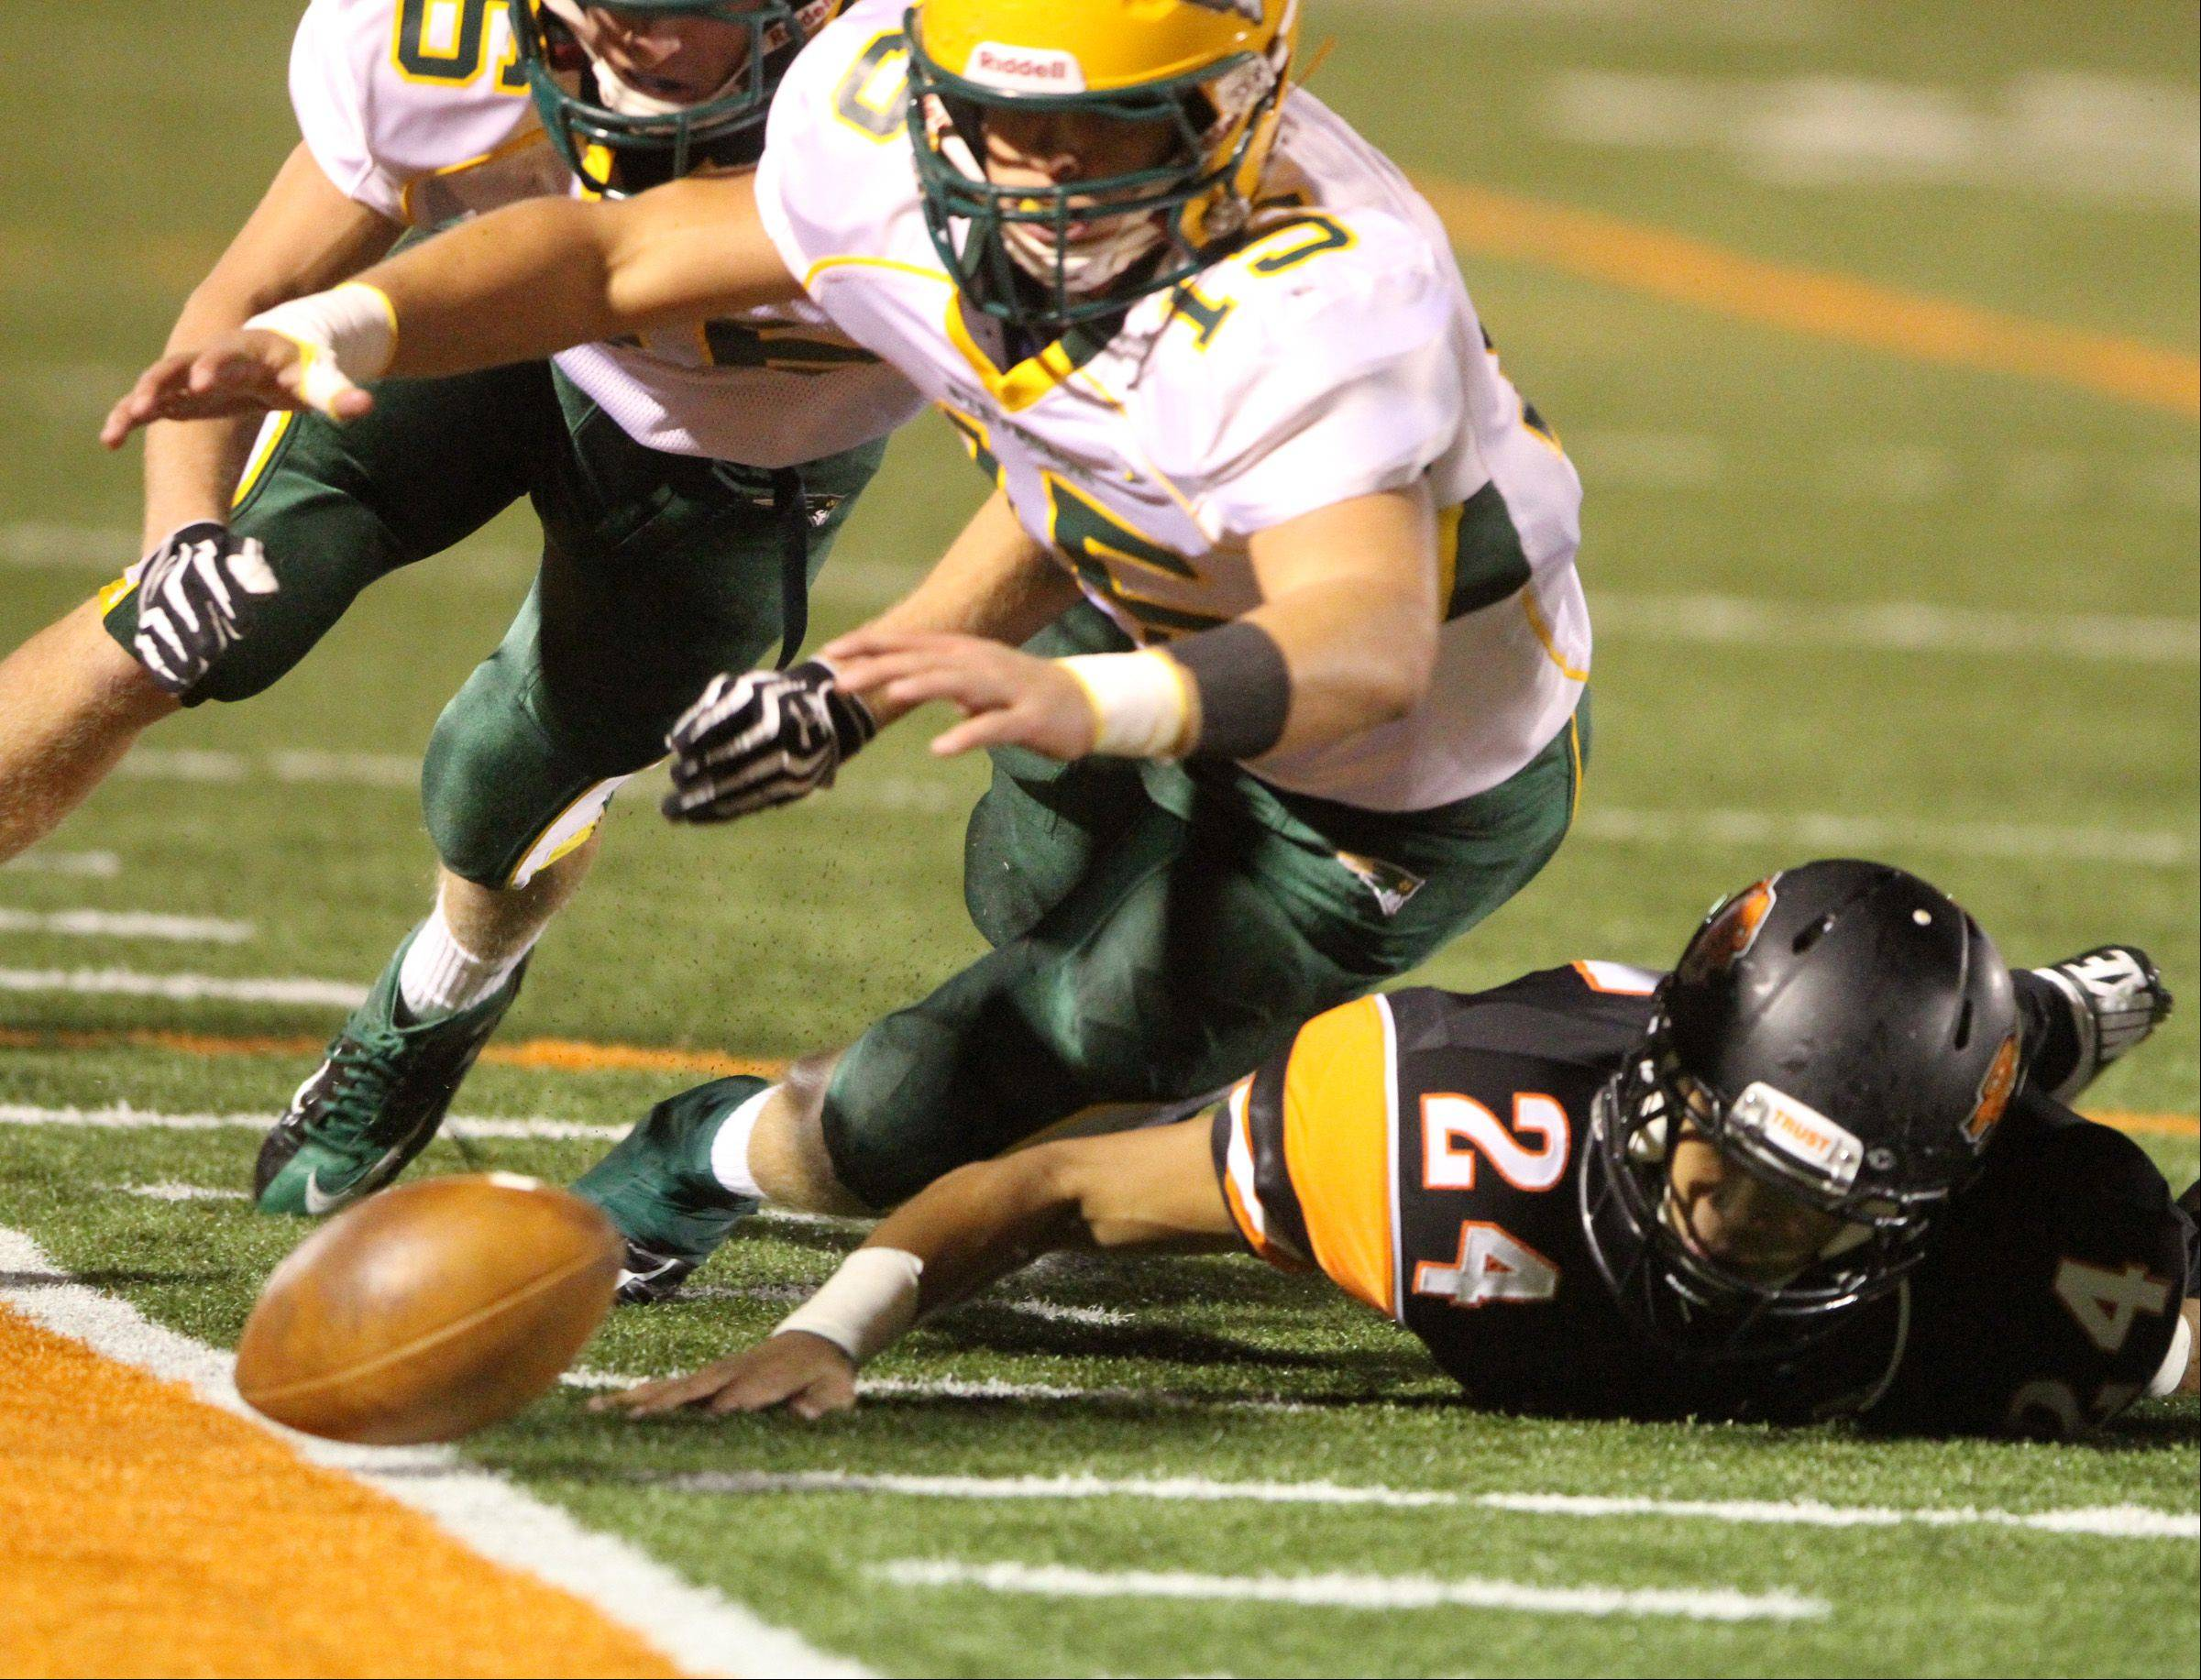 Stevenson's Sean O'Connell dives for the ball after a fumble by Libertyville on Friday.